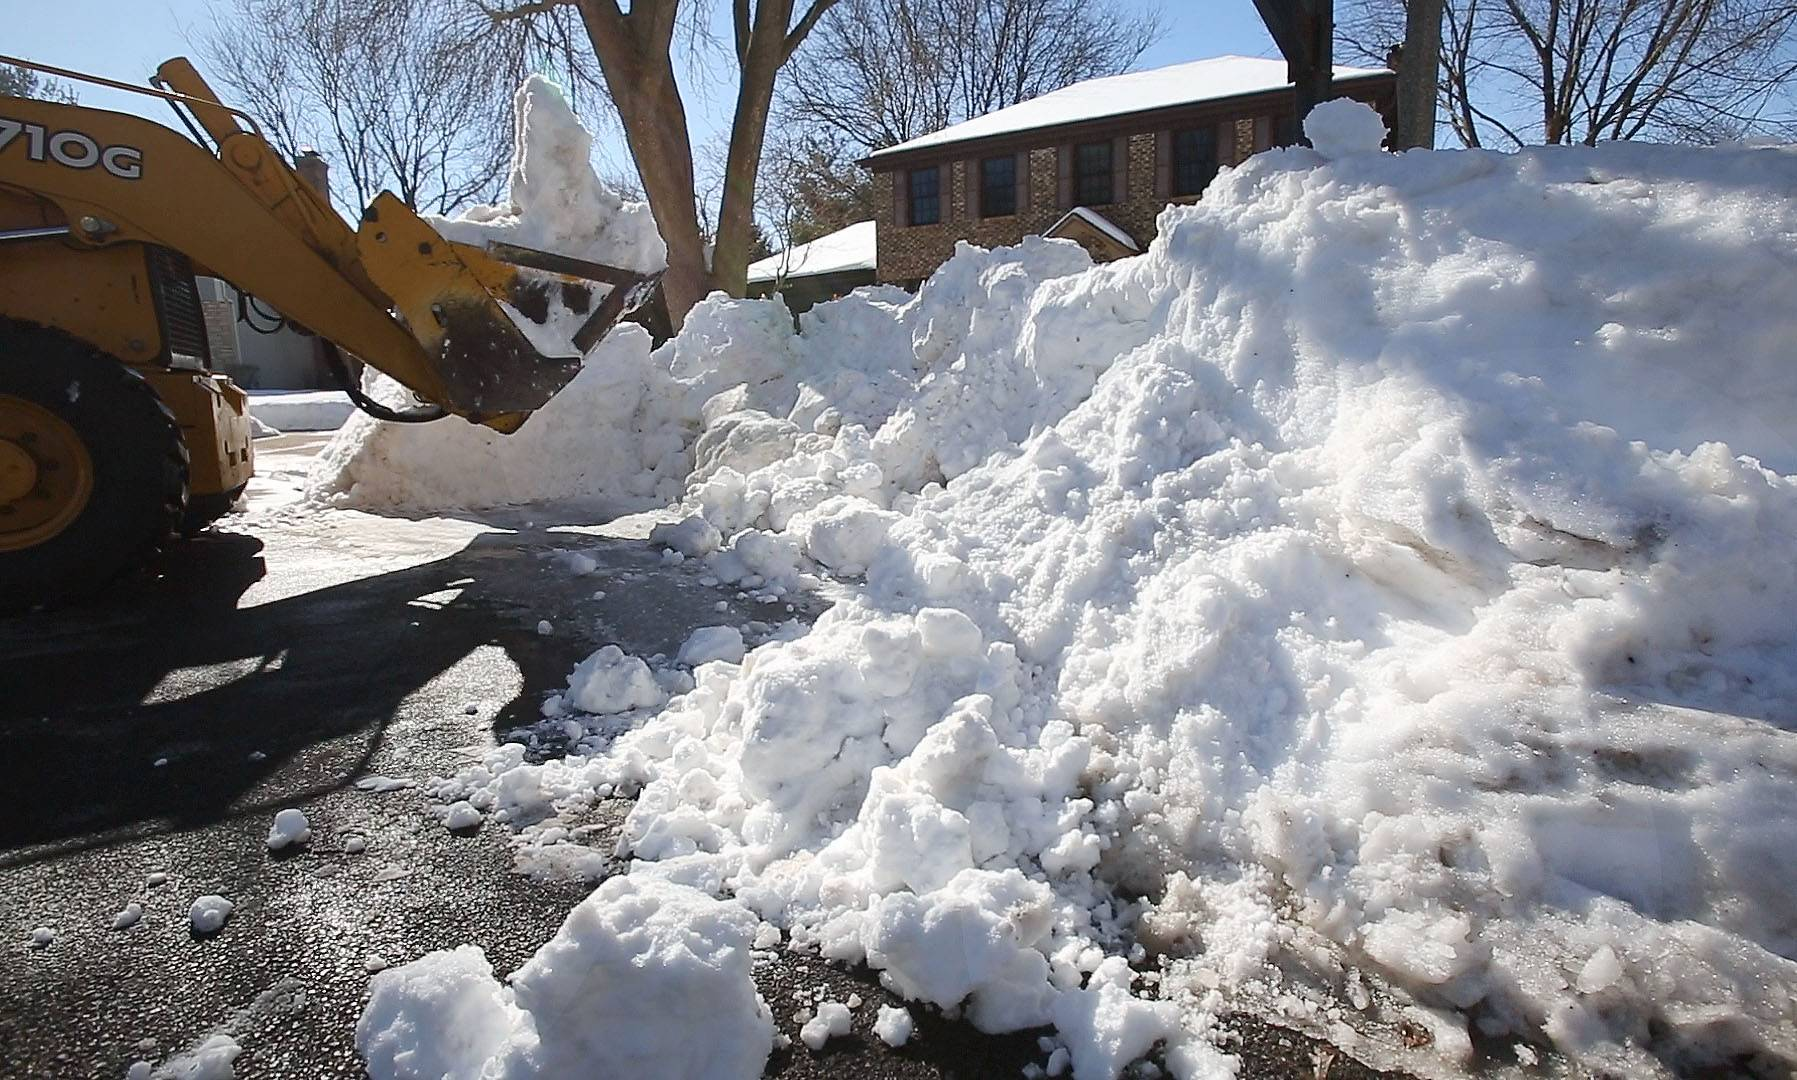 Naperville public works crews had to use a bulldozer to help clear storm drains in some portions of the city.